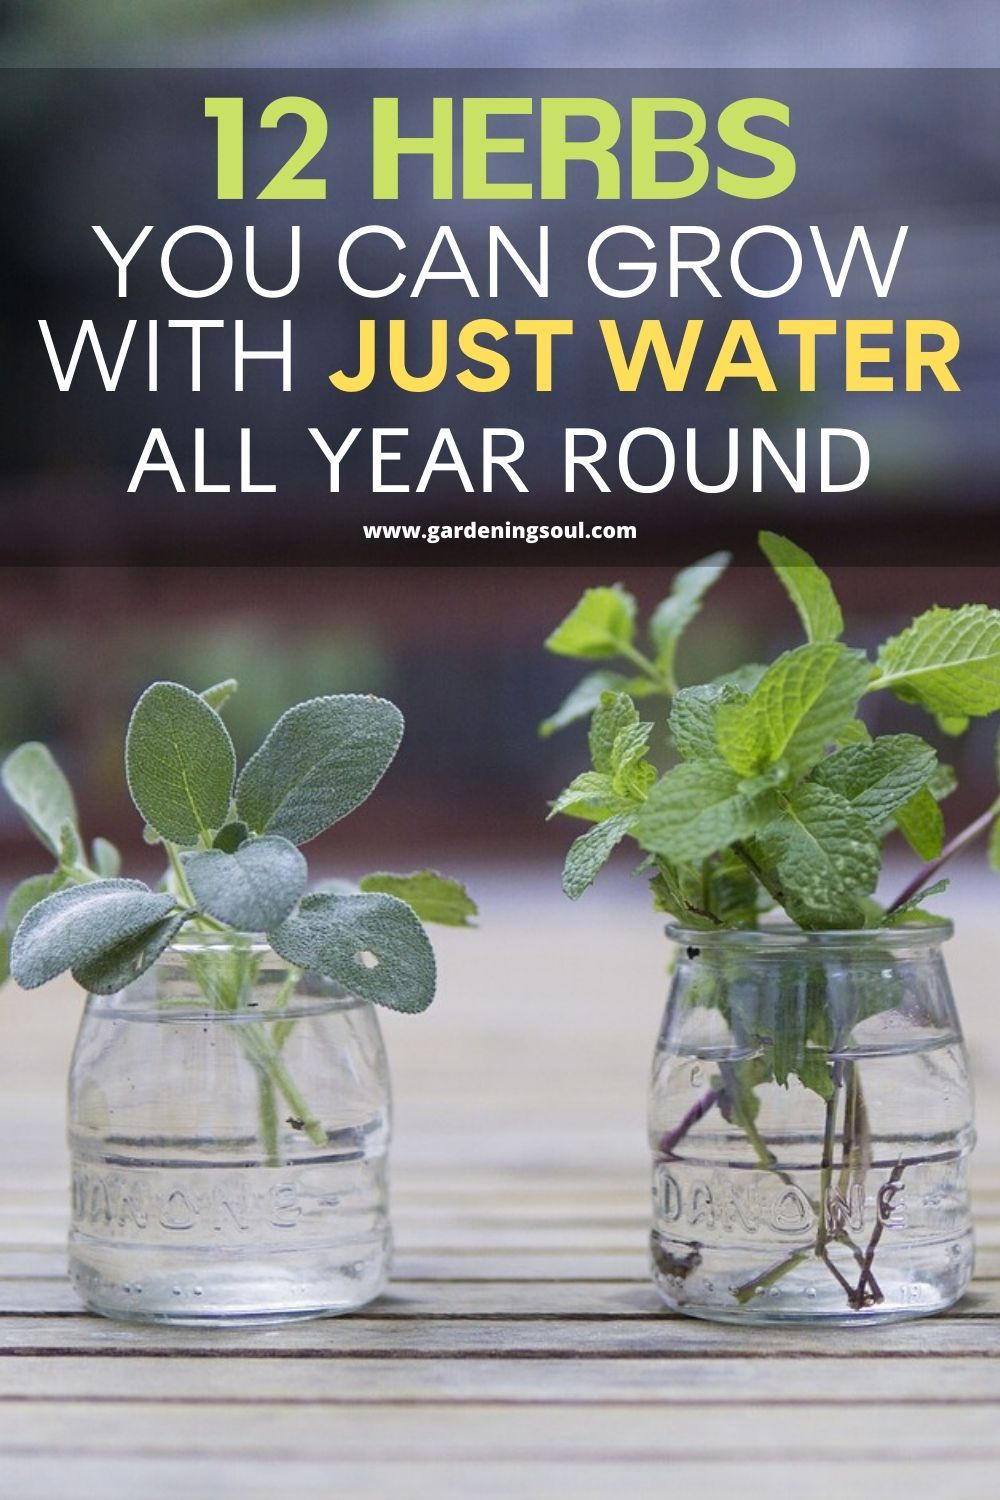 12 Herbs You Can Grow With Just Water All Year Round In 2020 Veg Garden Planting Herbs Growing Herbs